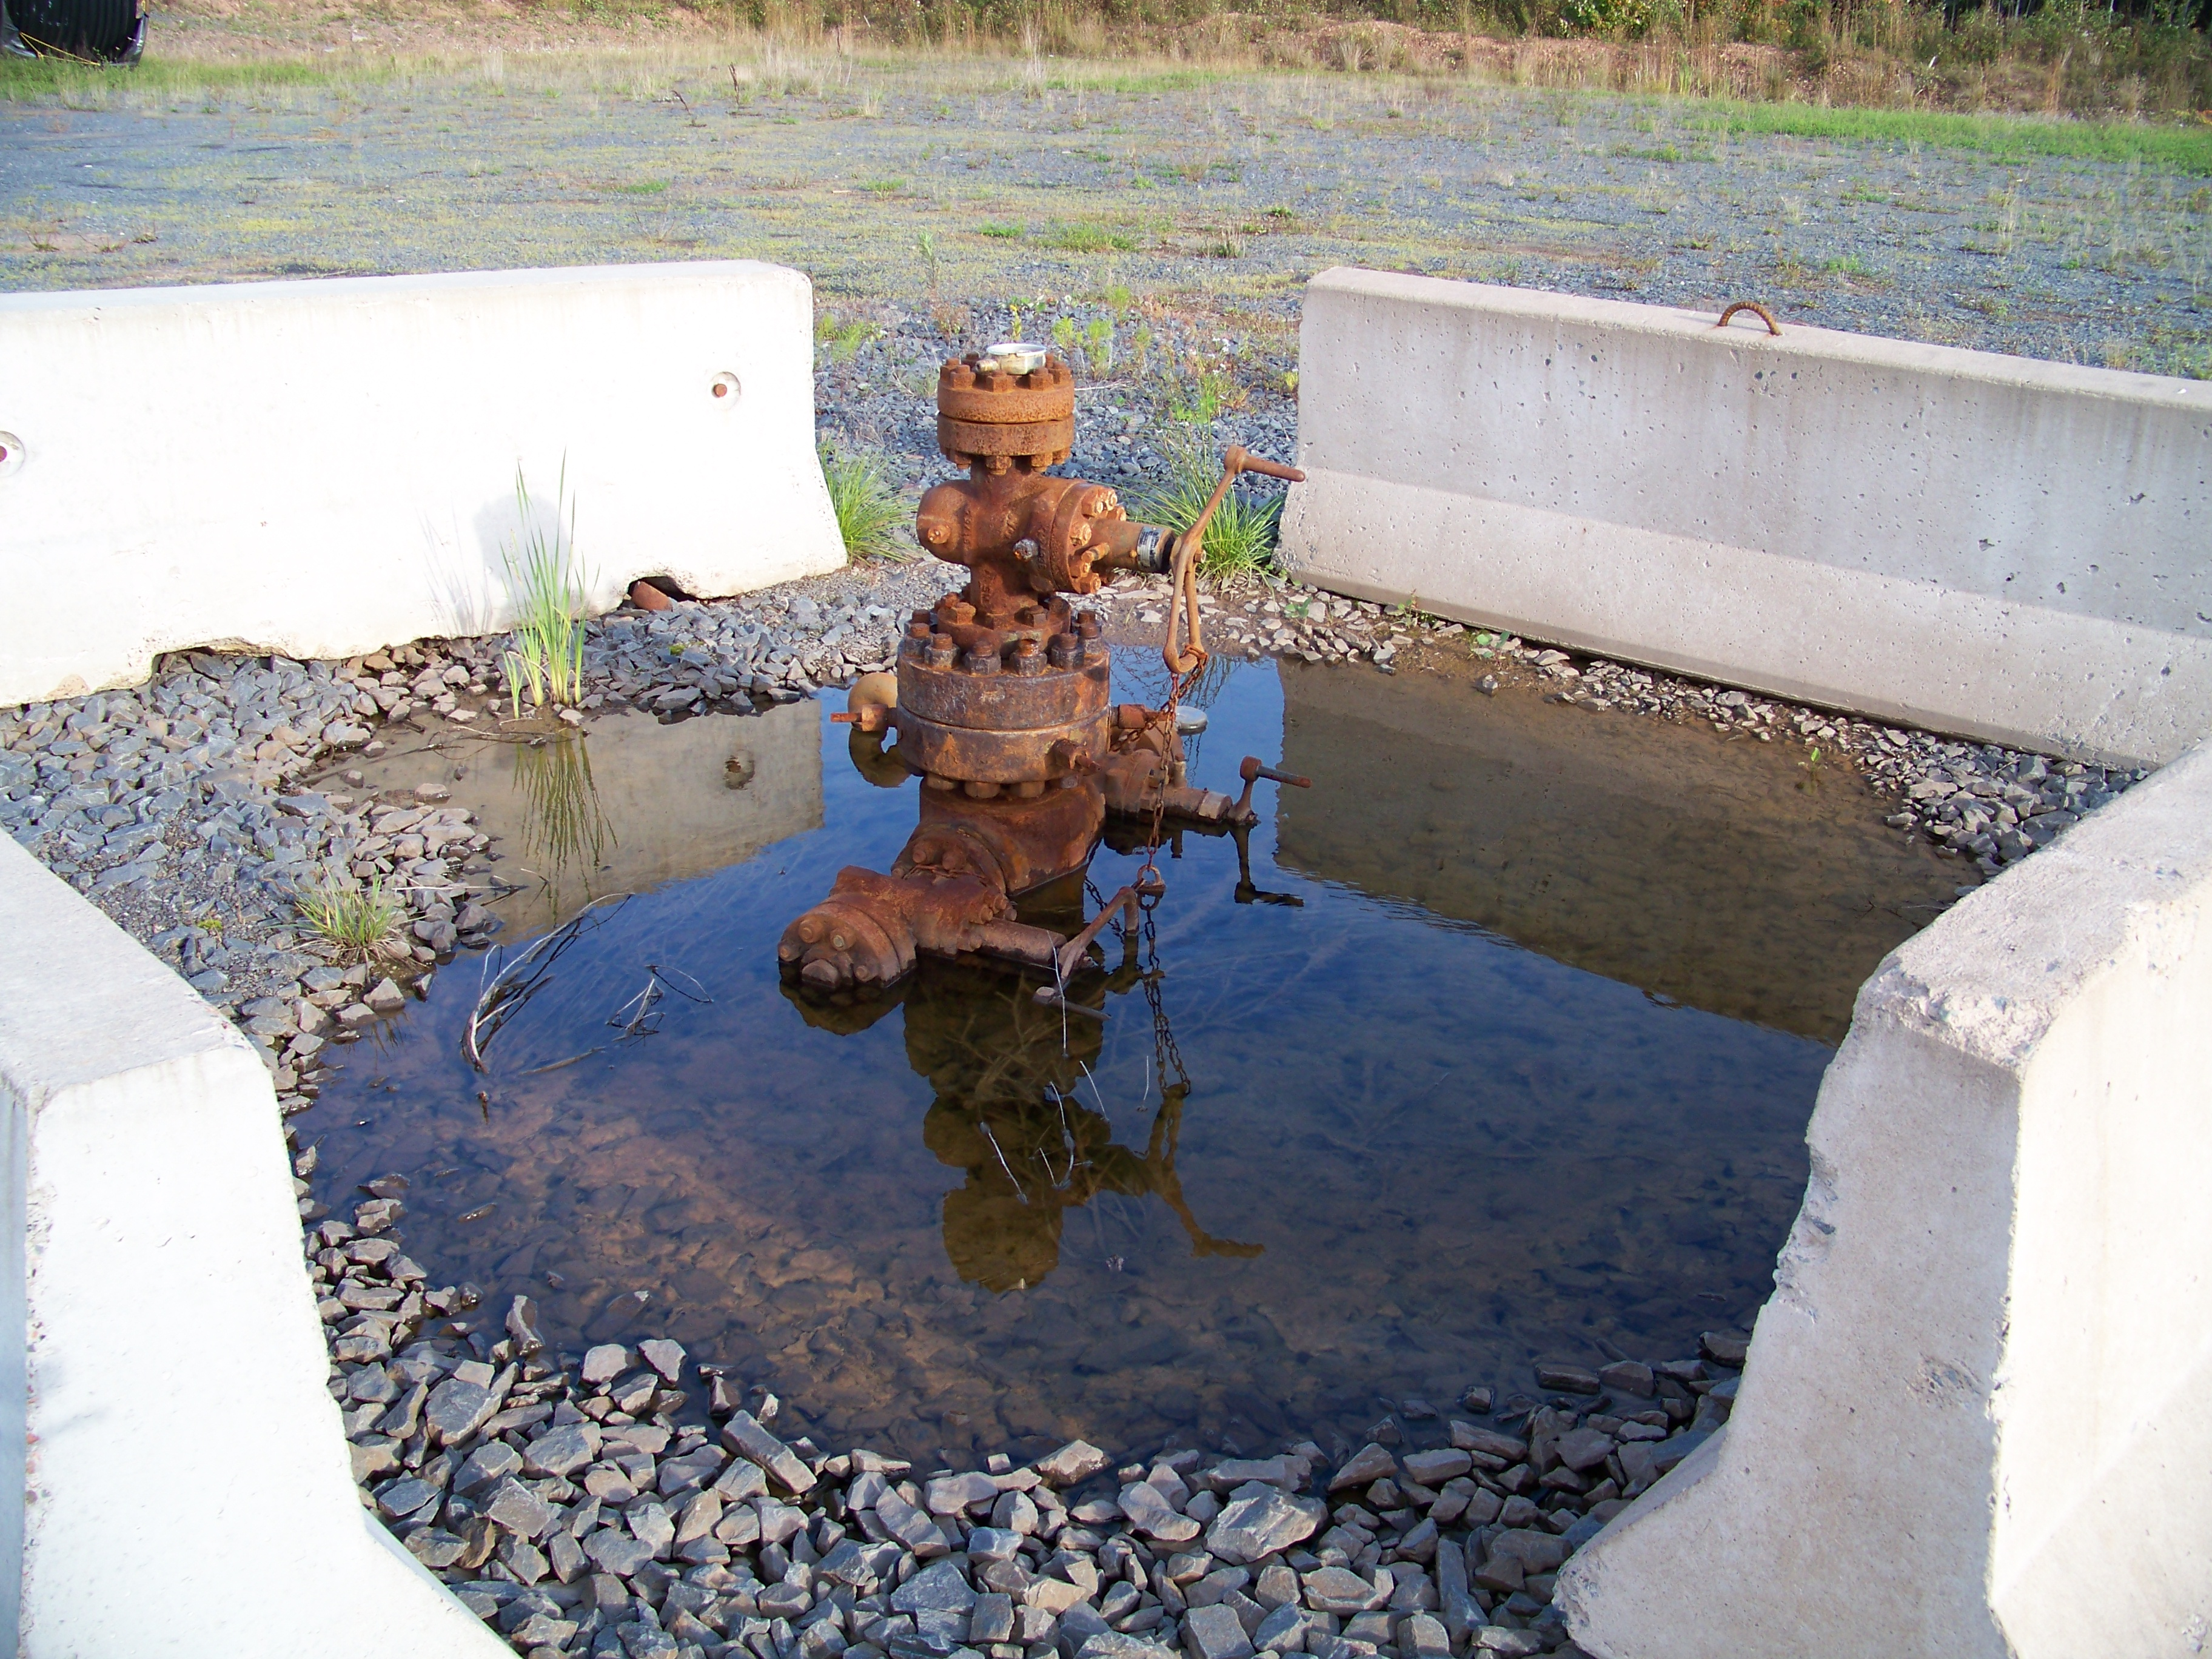 Kennetcook #1 capped wellhead 07 Oct 2012